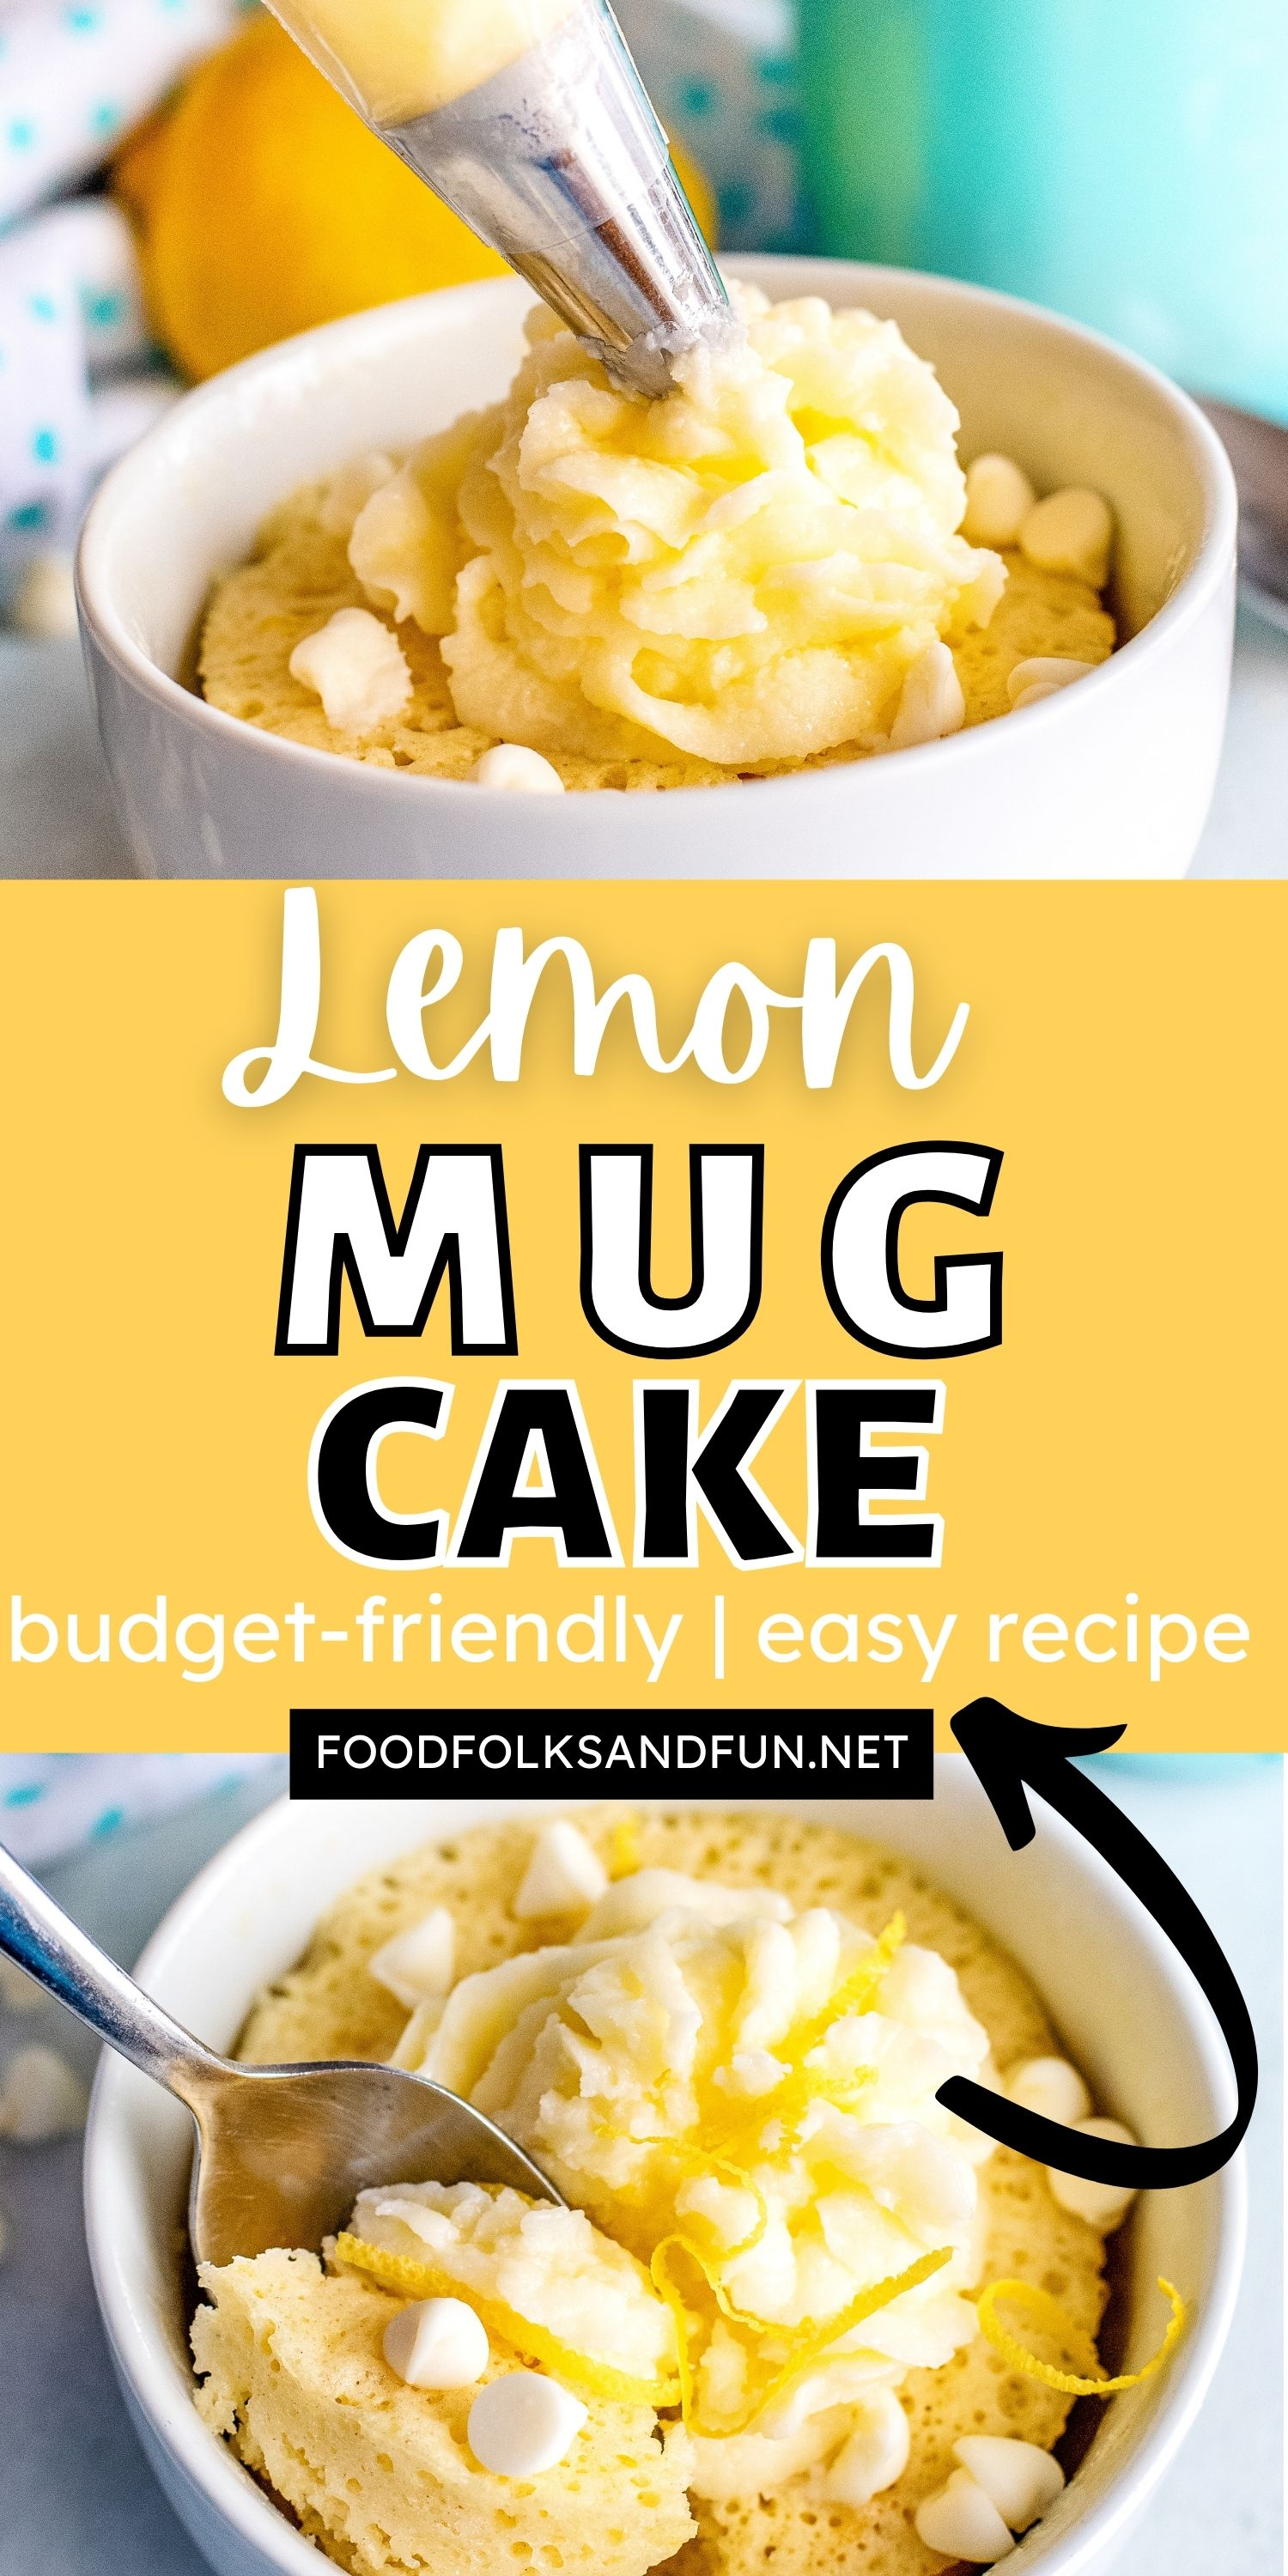 This Lemon Mug Cake recipe is zesty, delicious, and made in less than 10 minutes! Mug Cakes are one of the easiest dessert recipes you'll ever make. via @foodfolksandfun